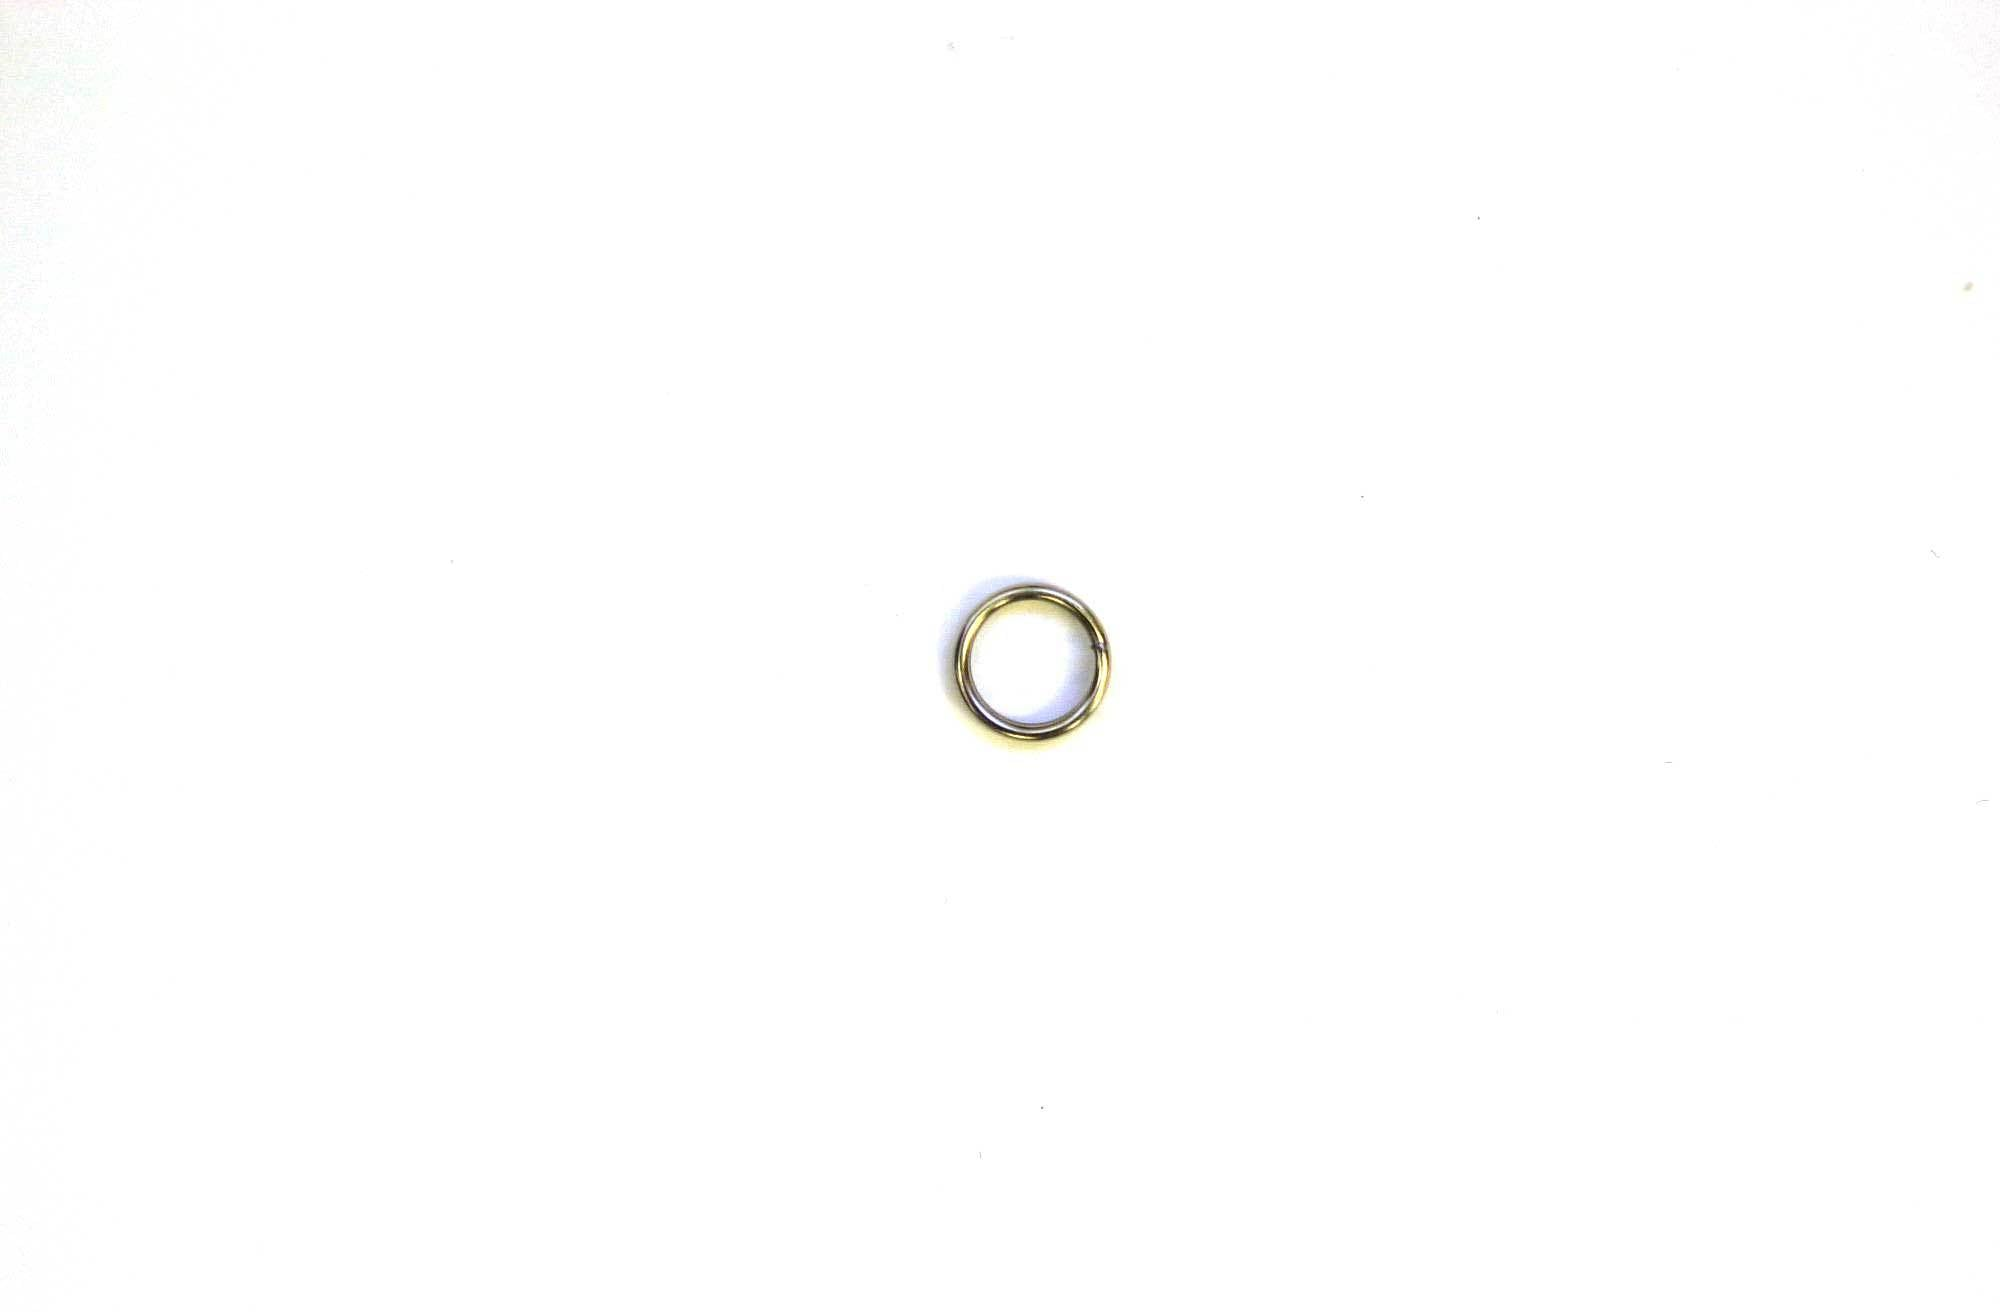 Eagle Claw Split Rings Nickle 8ct Size 4